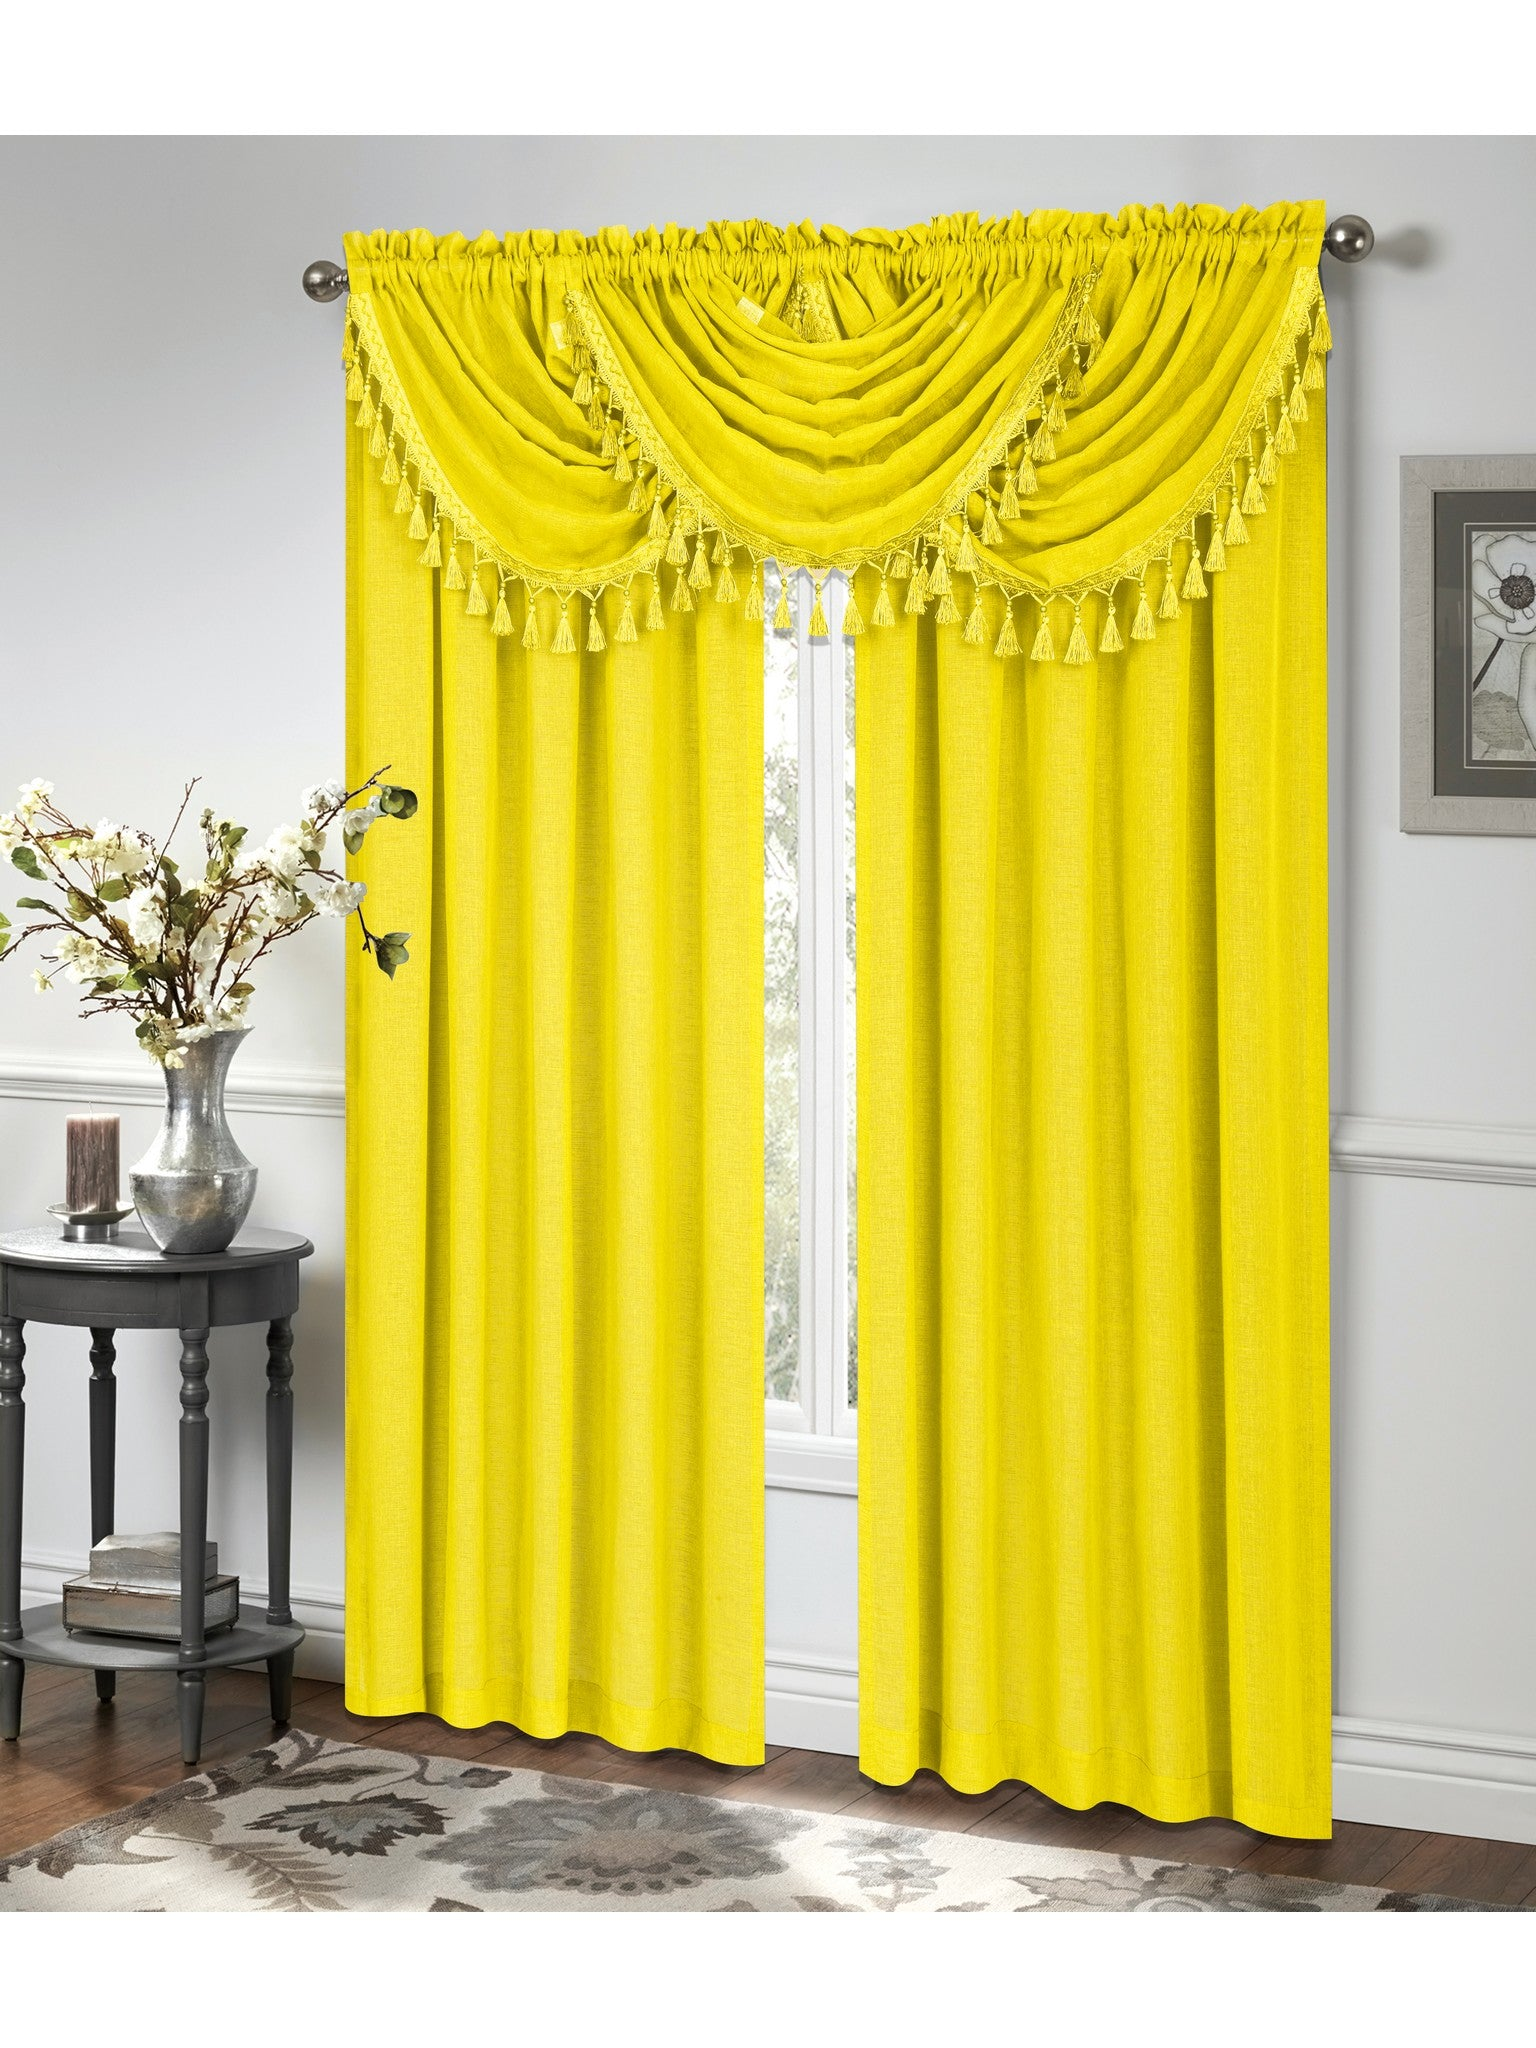 for tsumi valance design bedroom ideas interior of with curtains image lovely best yellow blind gray and